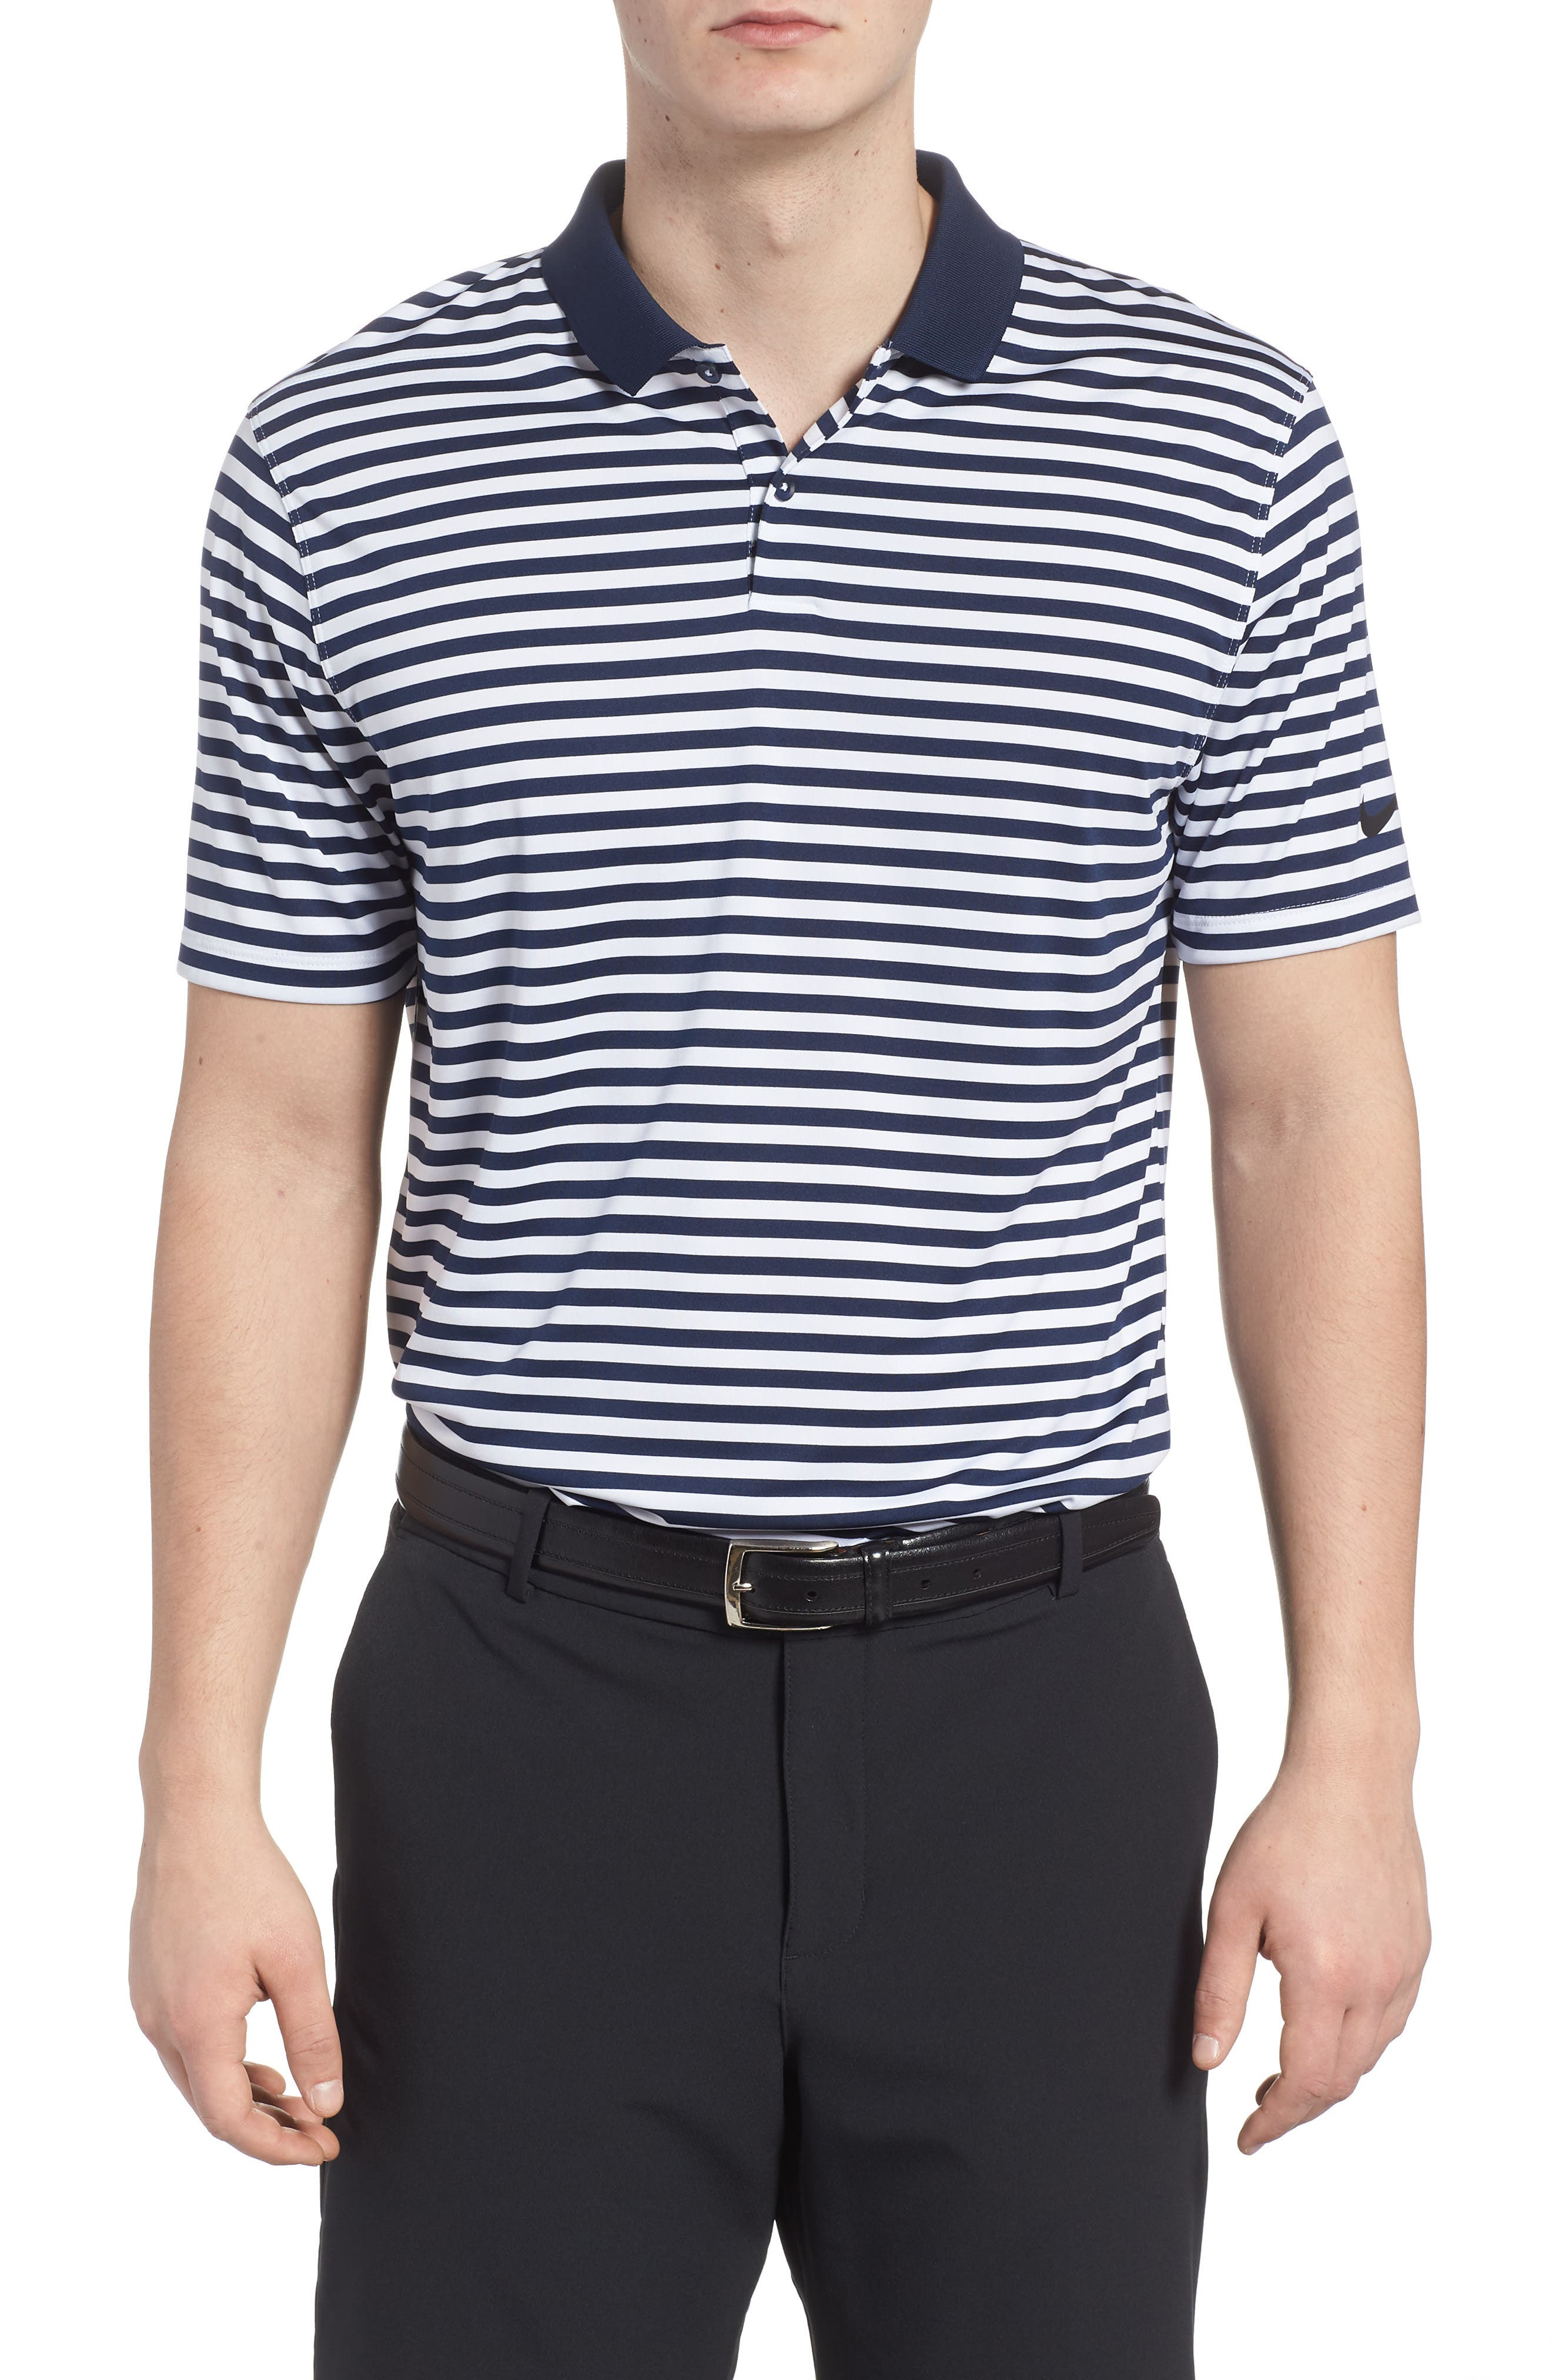 Dry Victory Stripe Golf Polo,                         Main,                         color, College Navy/ White/ Black